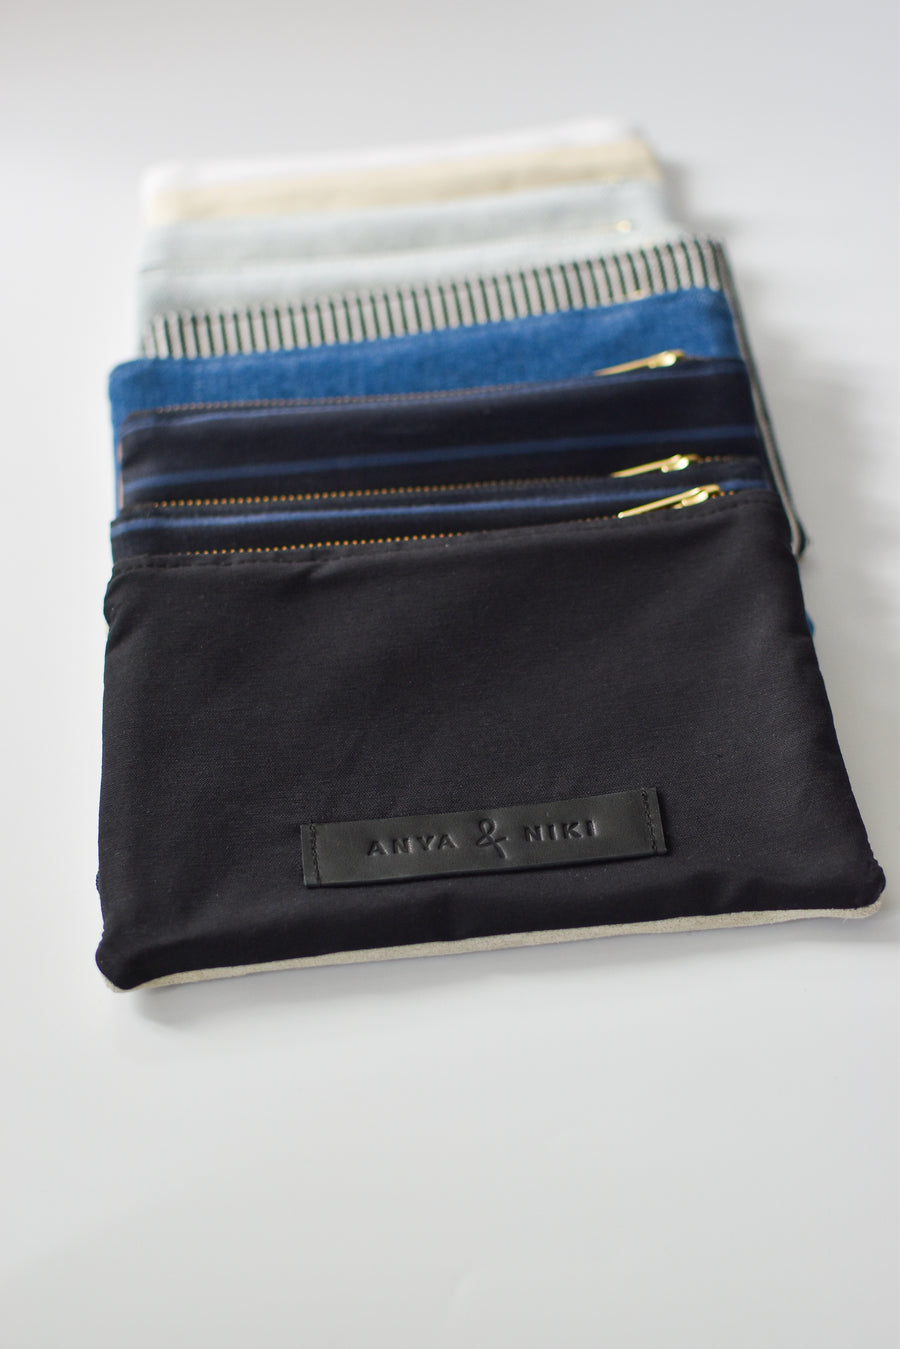 Collection of small limited edition leather and denim pouches from Anya & Niki.